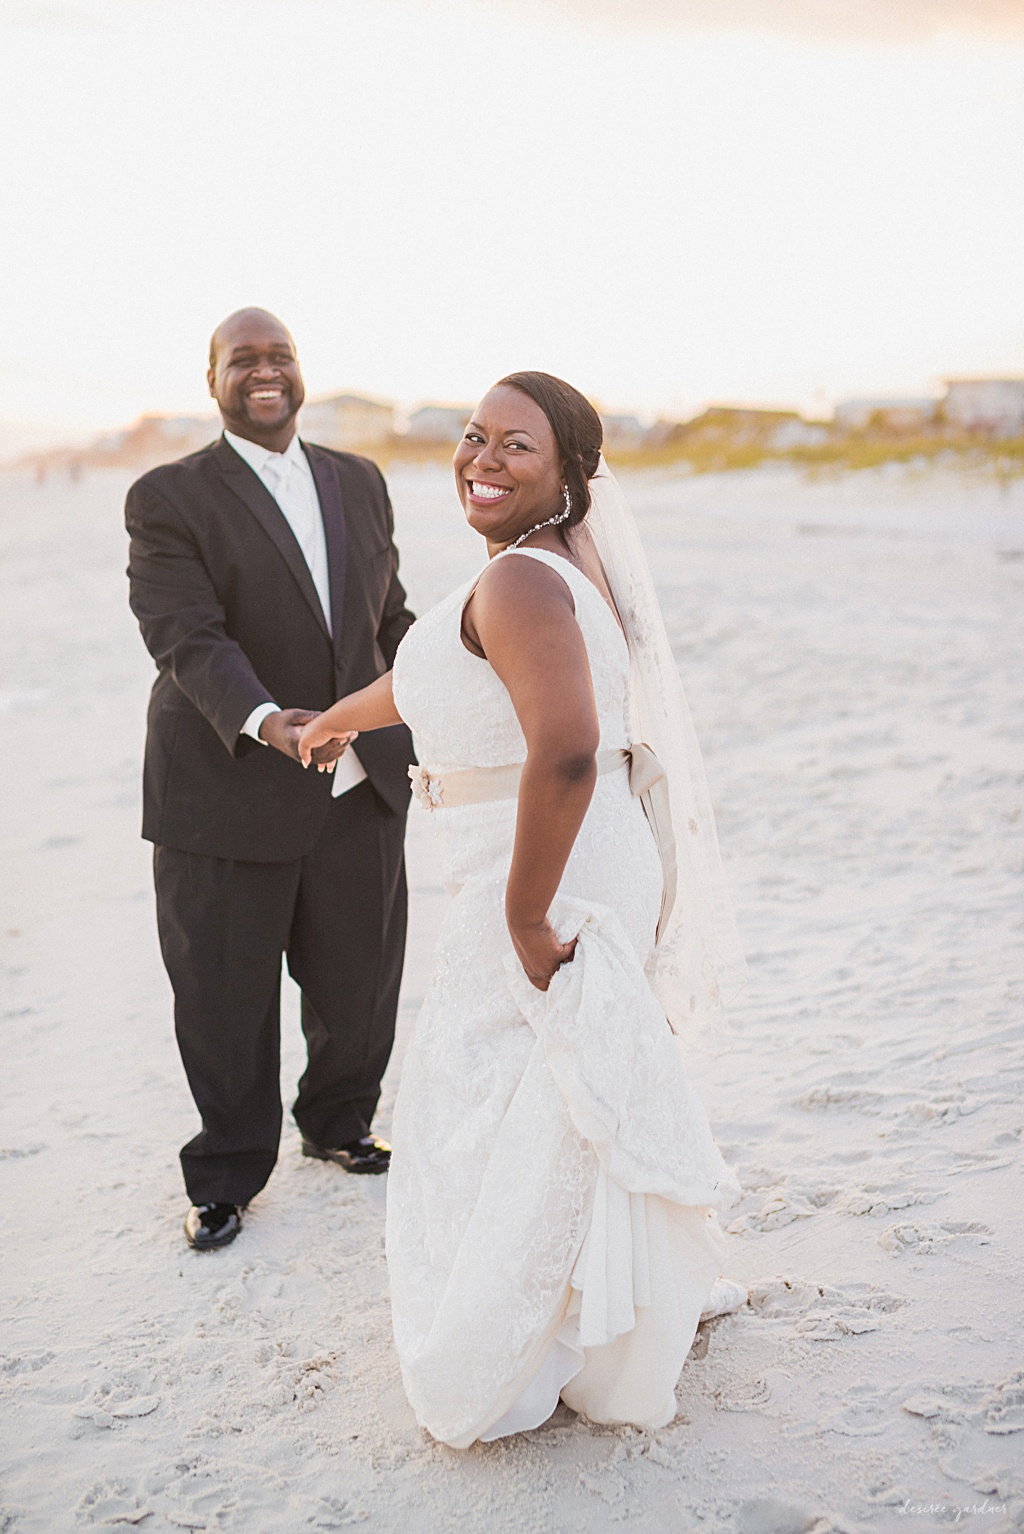 panama-city-beach-30a-wedding-photographer-family-destination_0275